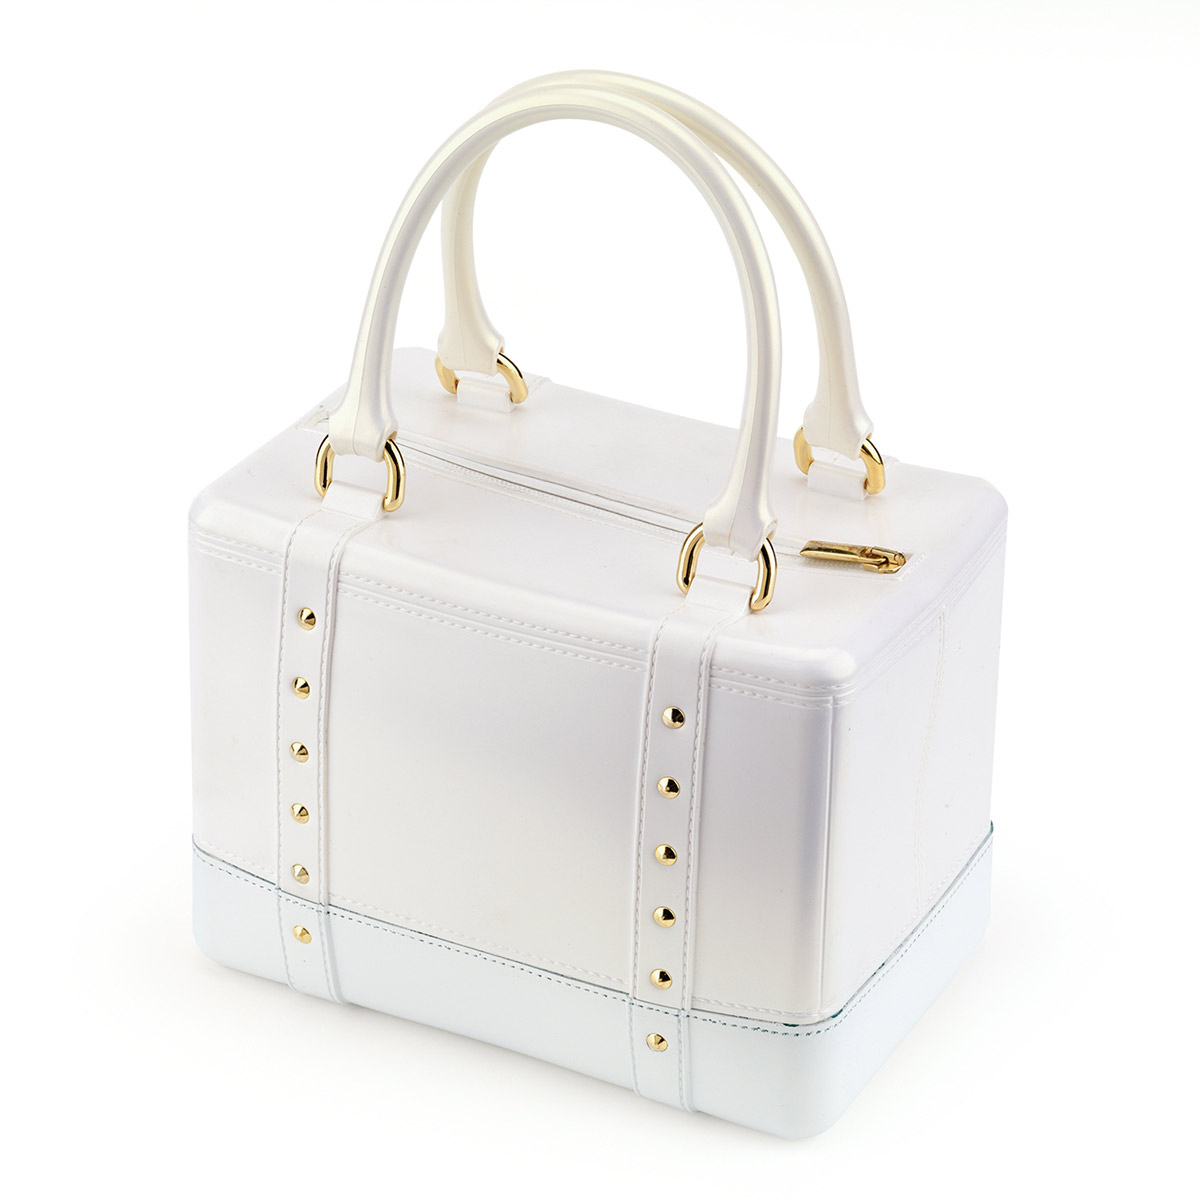 Il bauletto in Pvc Chiara Bellini nel blog Little Fairy Fashion! Borsa a bauletto in Pvc con borchie oro